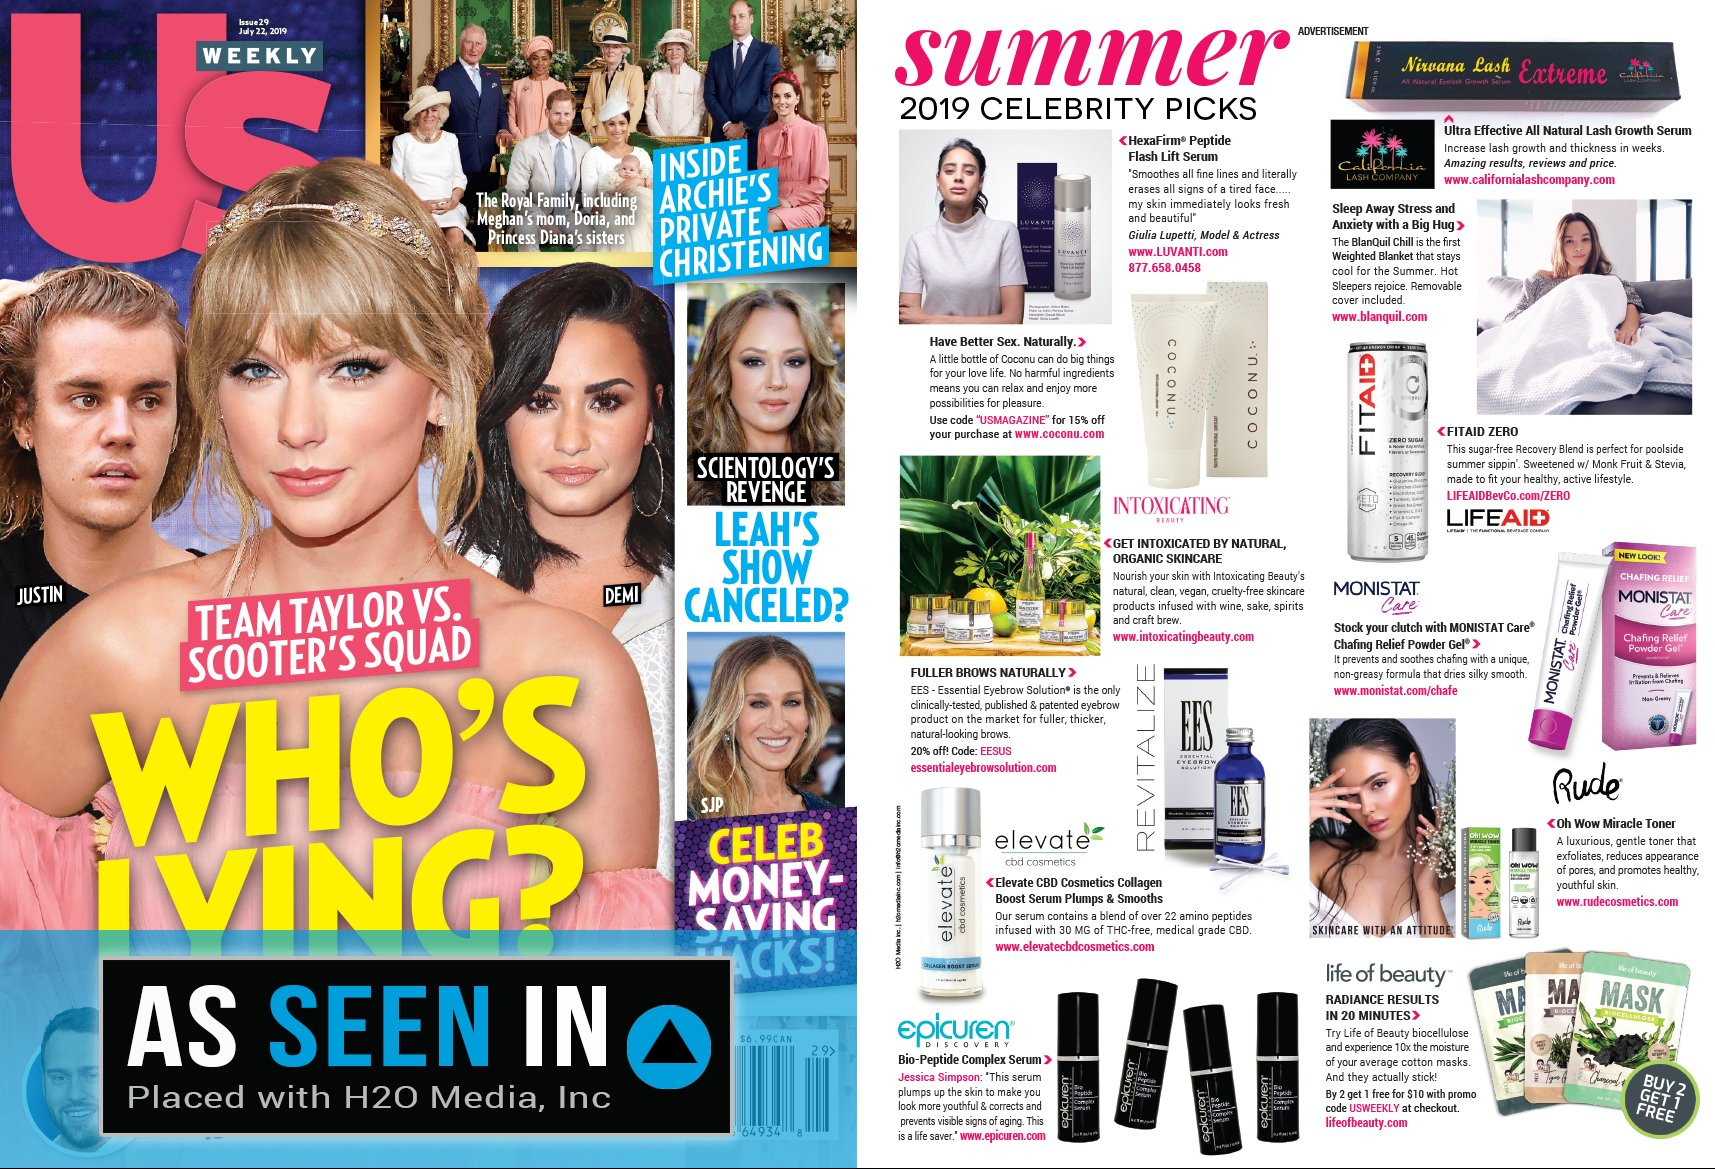 US Weekly magazine containing Intoxicating Beauty products.